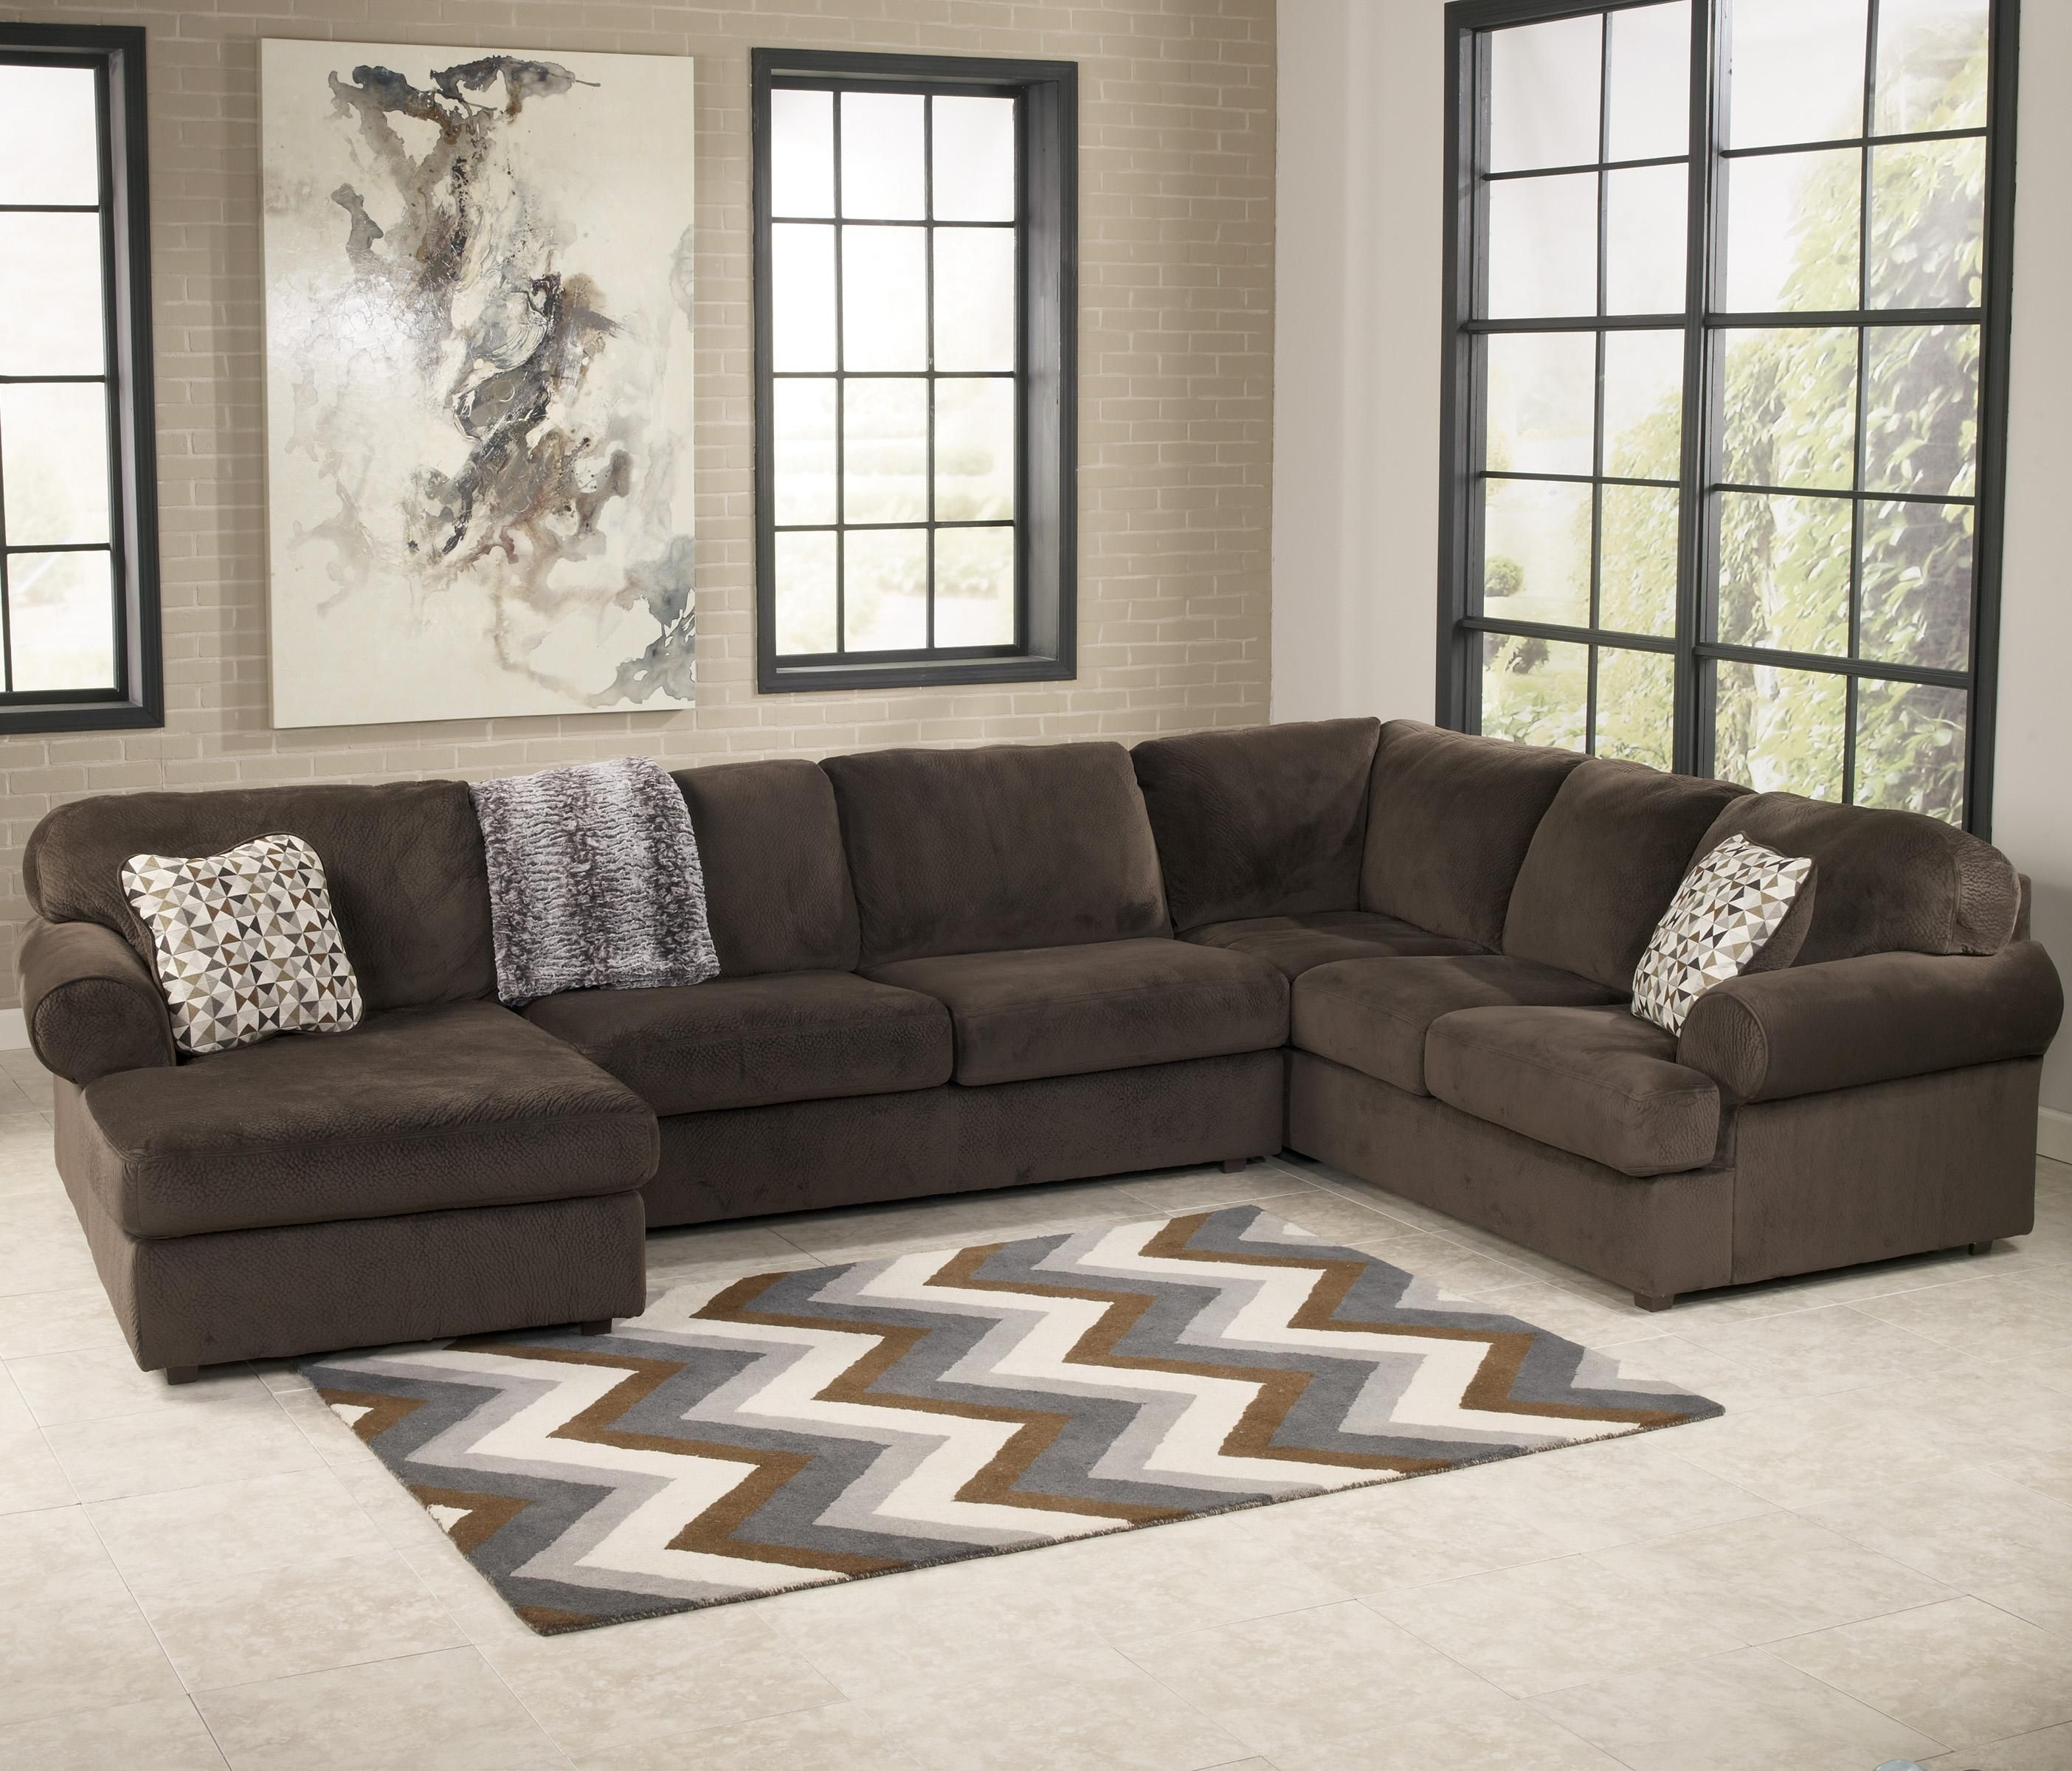 Sectional Couch Hattiesburg Ms: 10 Best Collection Of Jackson Ms Sectional Sofas